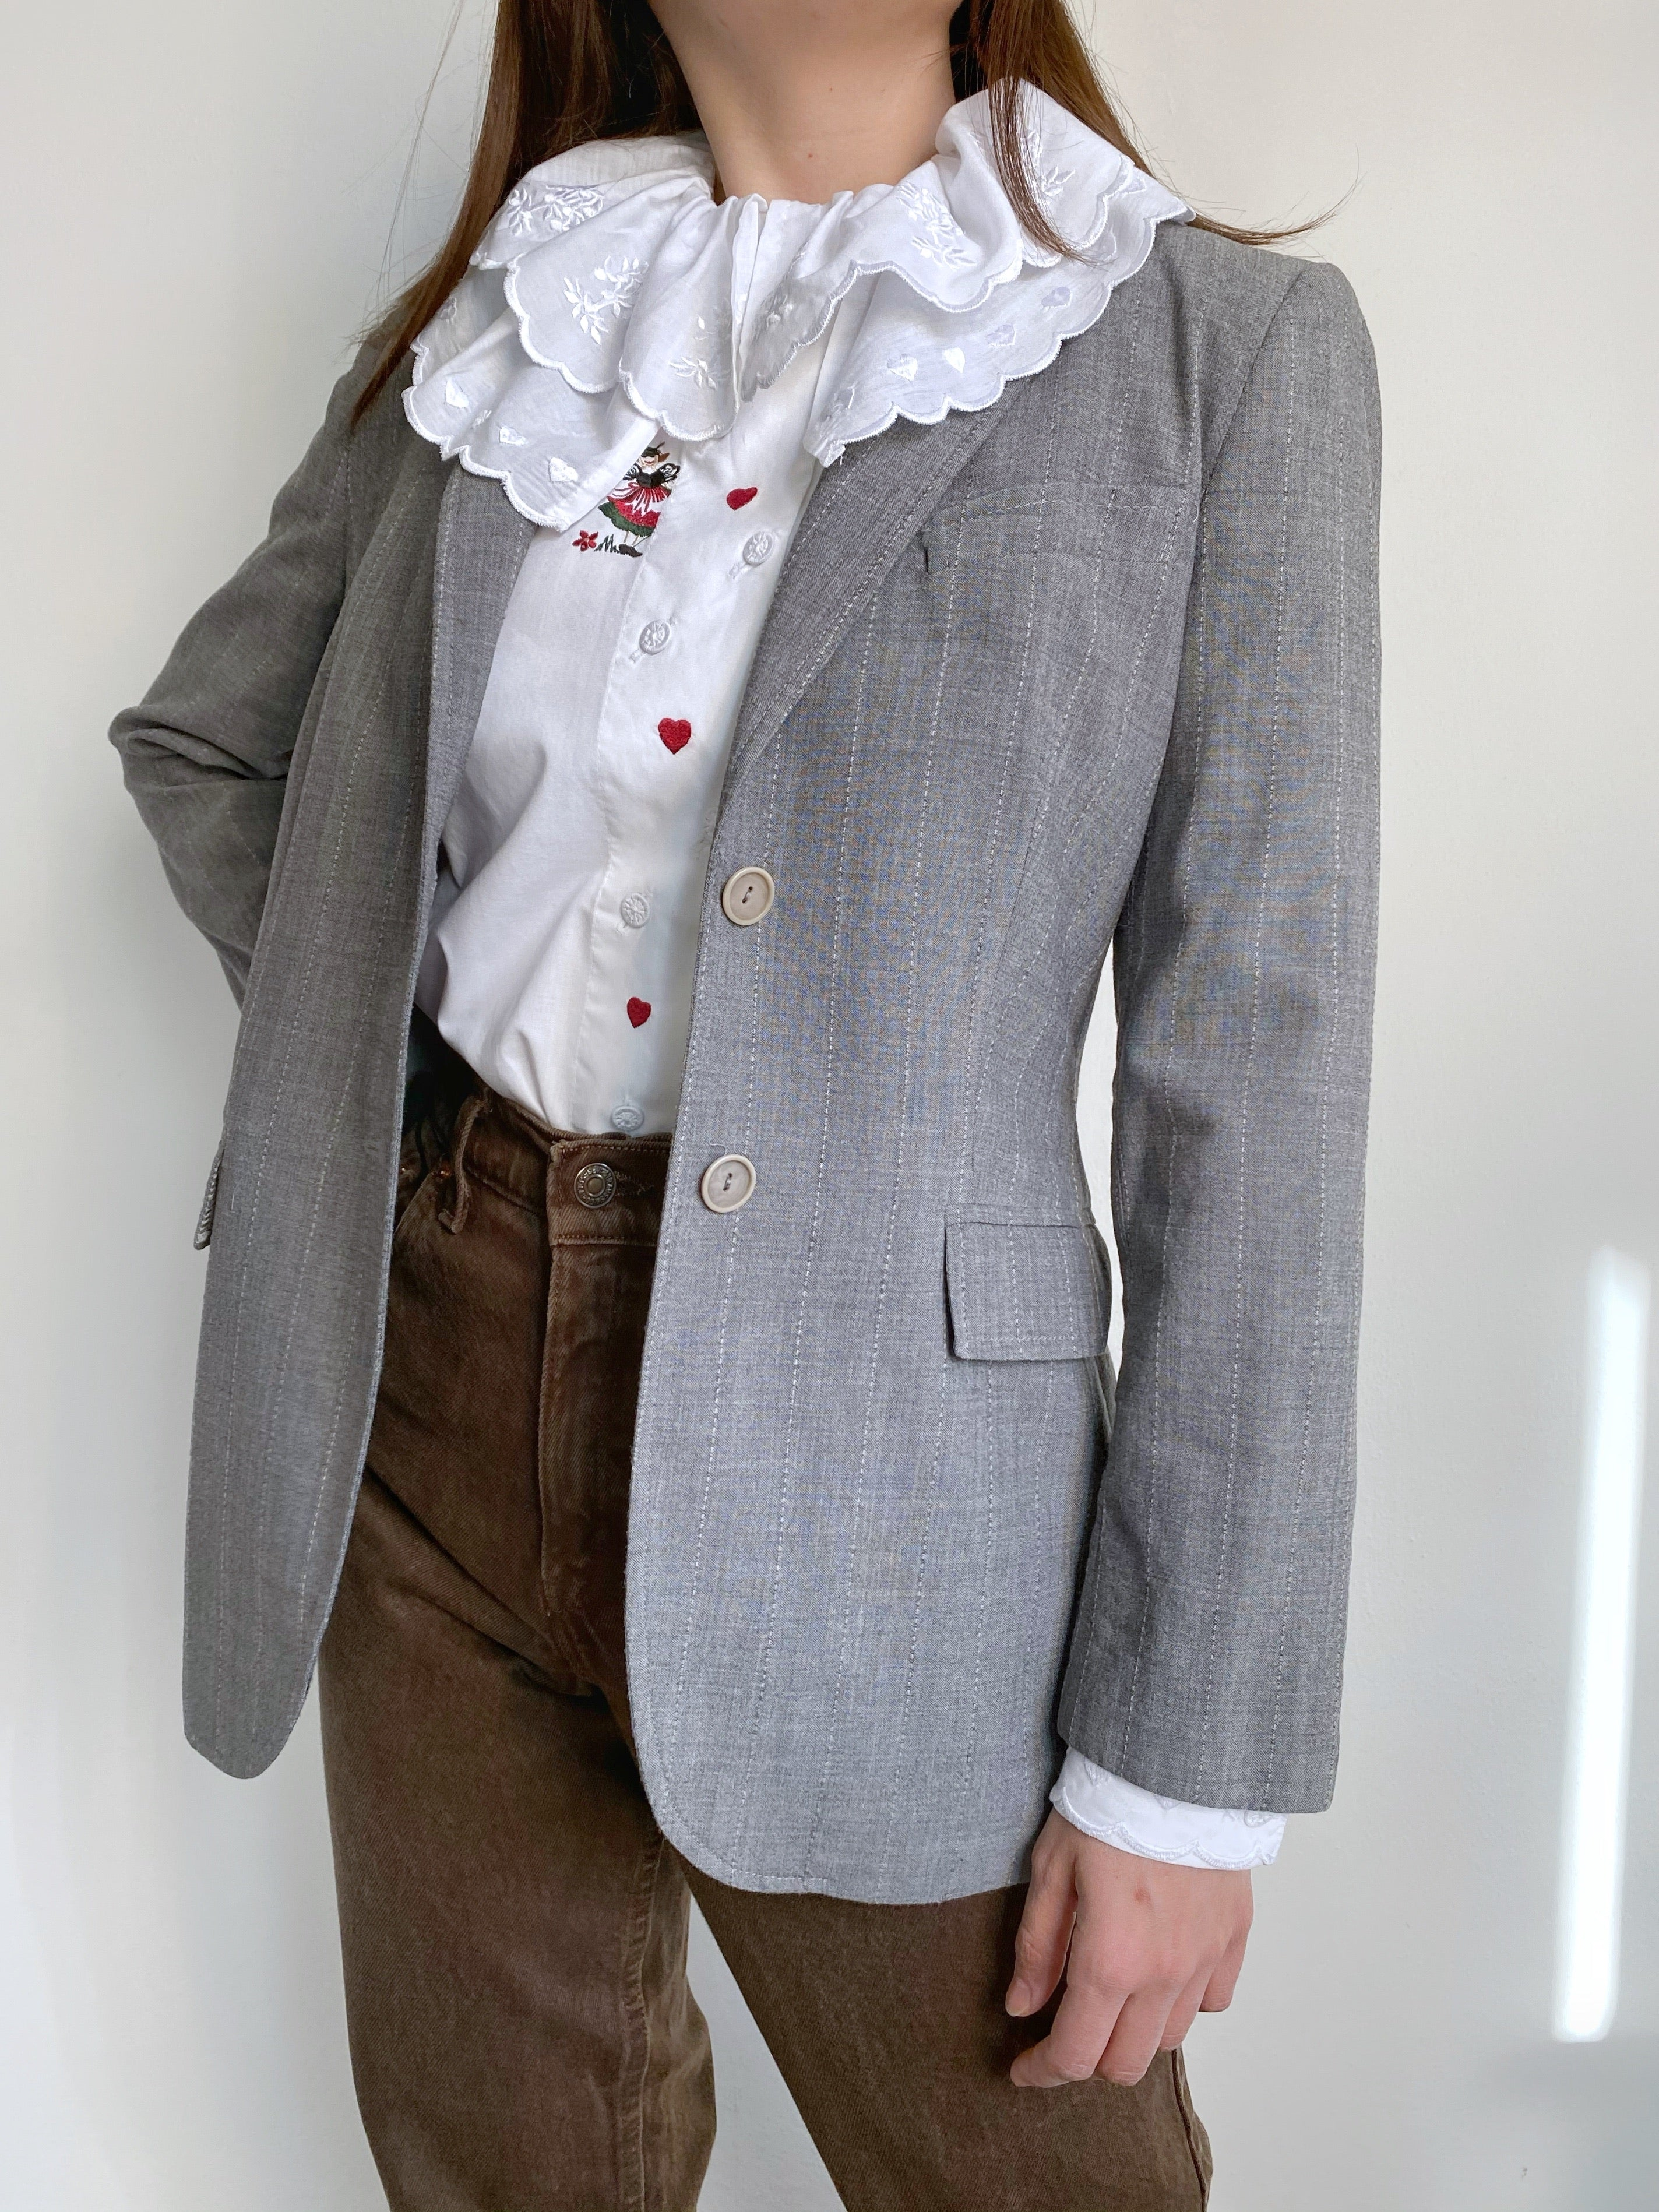 Vintage Max&Co lightweight wool striped grey blazer